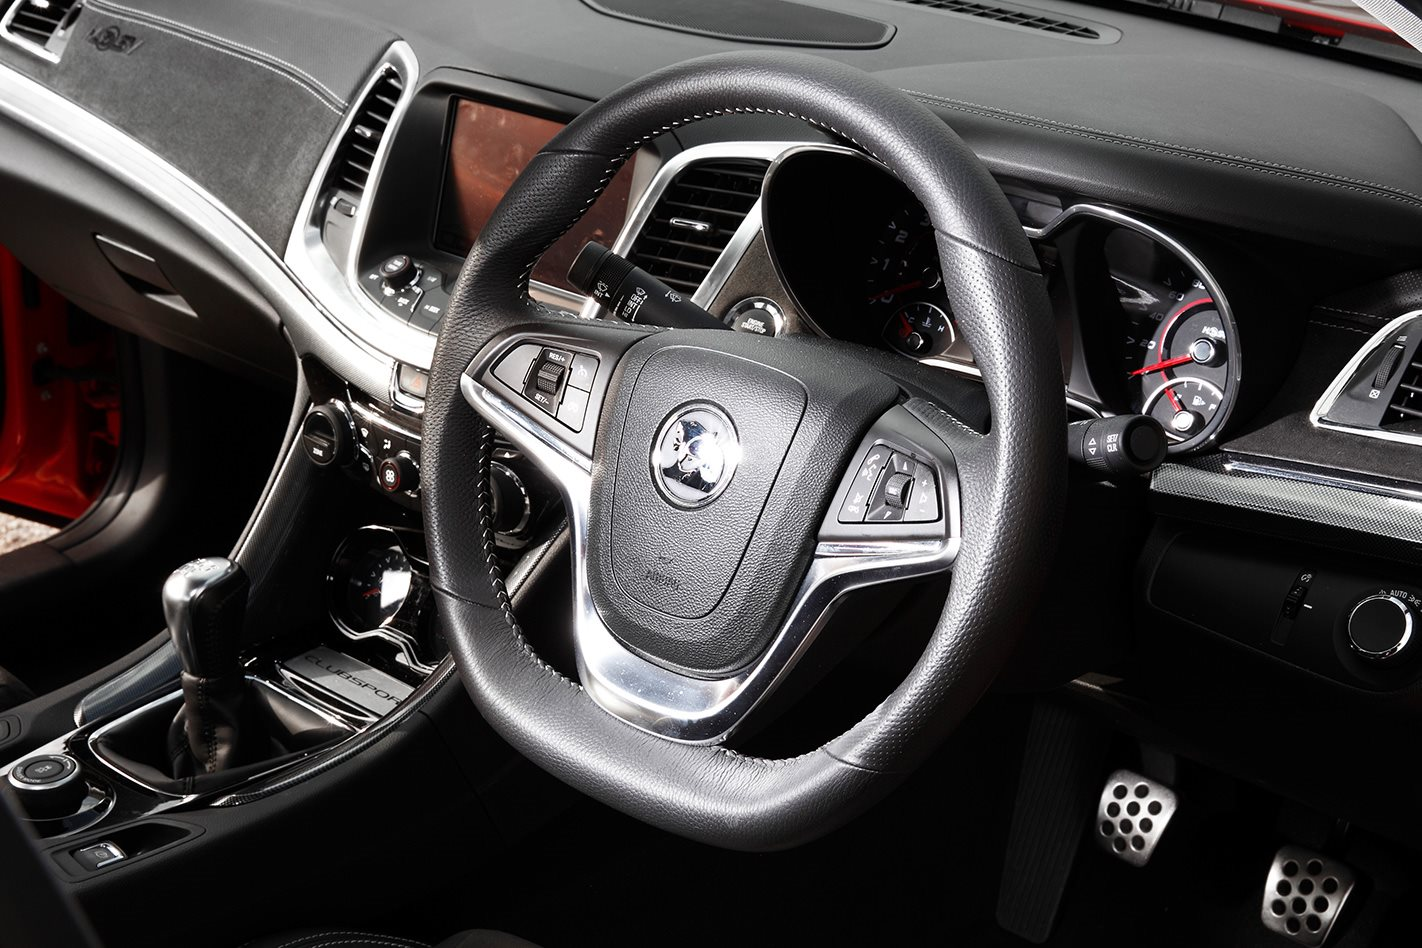 2013 HSV Clubsport steering wheel